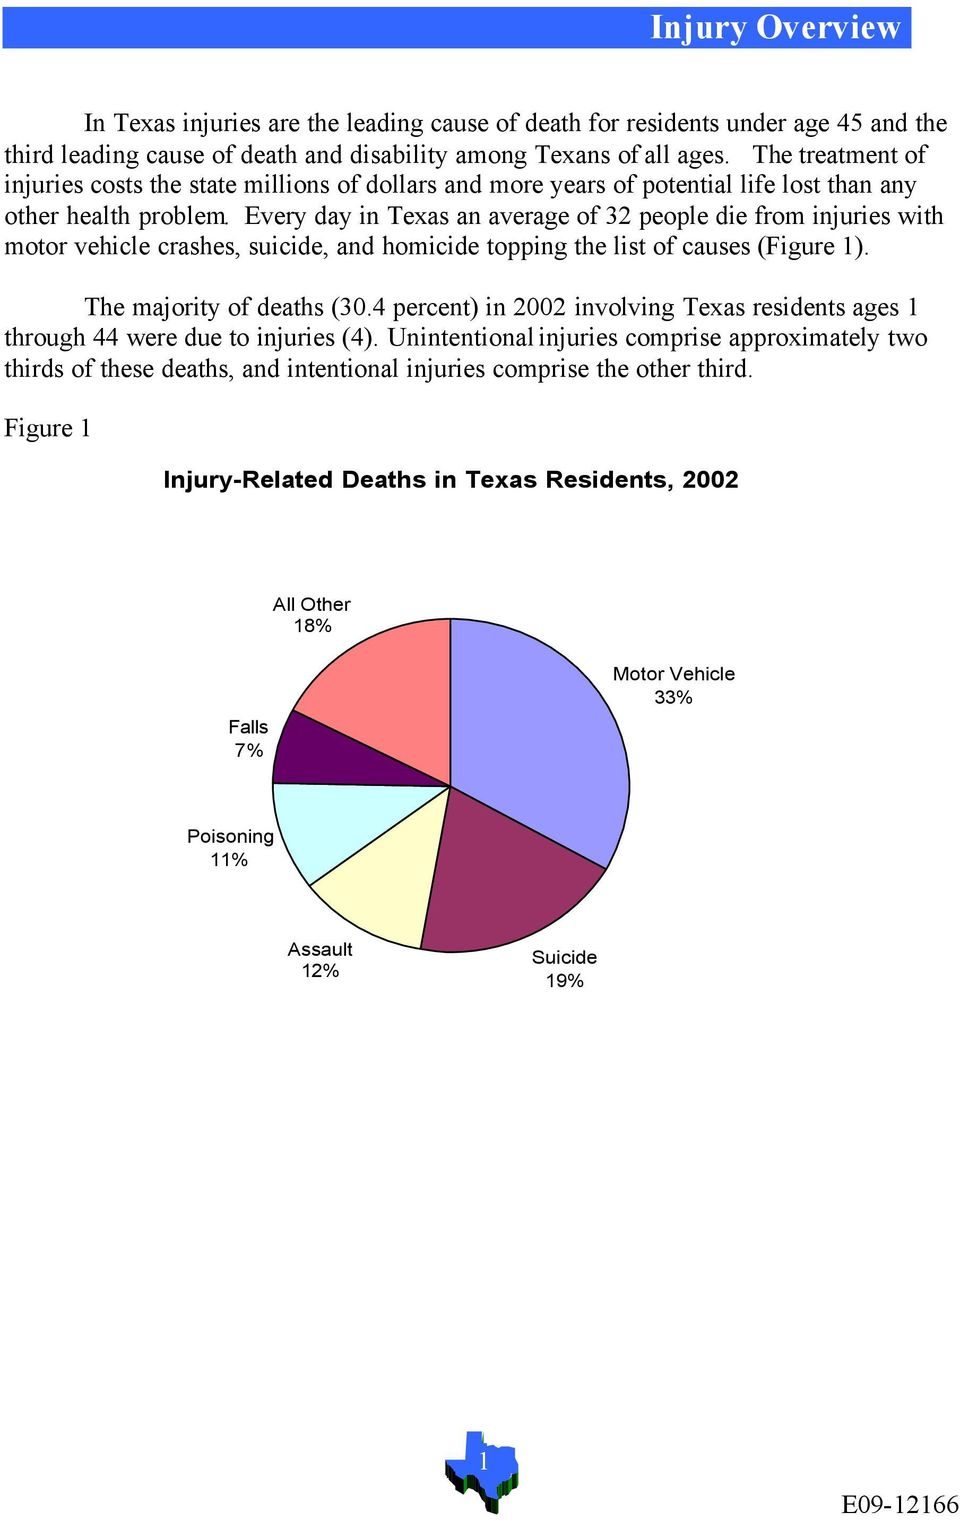 Every day in Texas an average of 32 people die from injuries with motor vehicle crashes, suicide, and homicide topping the list of causes (Figure 1). The majority of deaths (30.